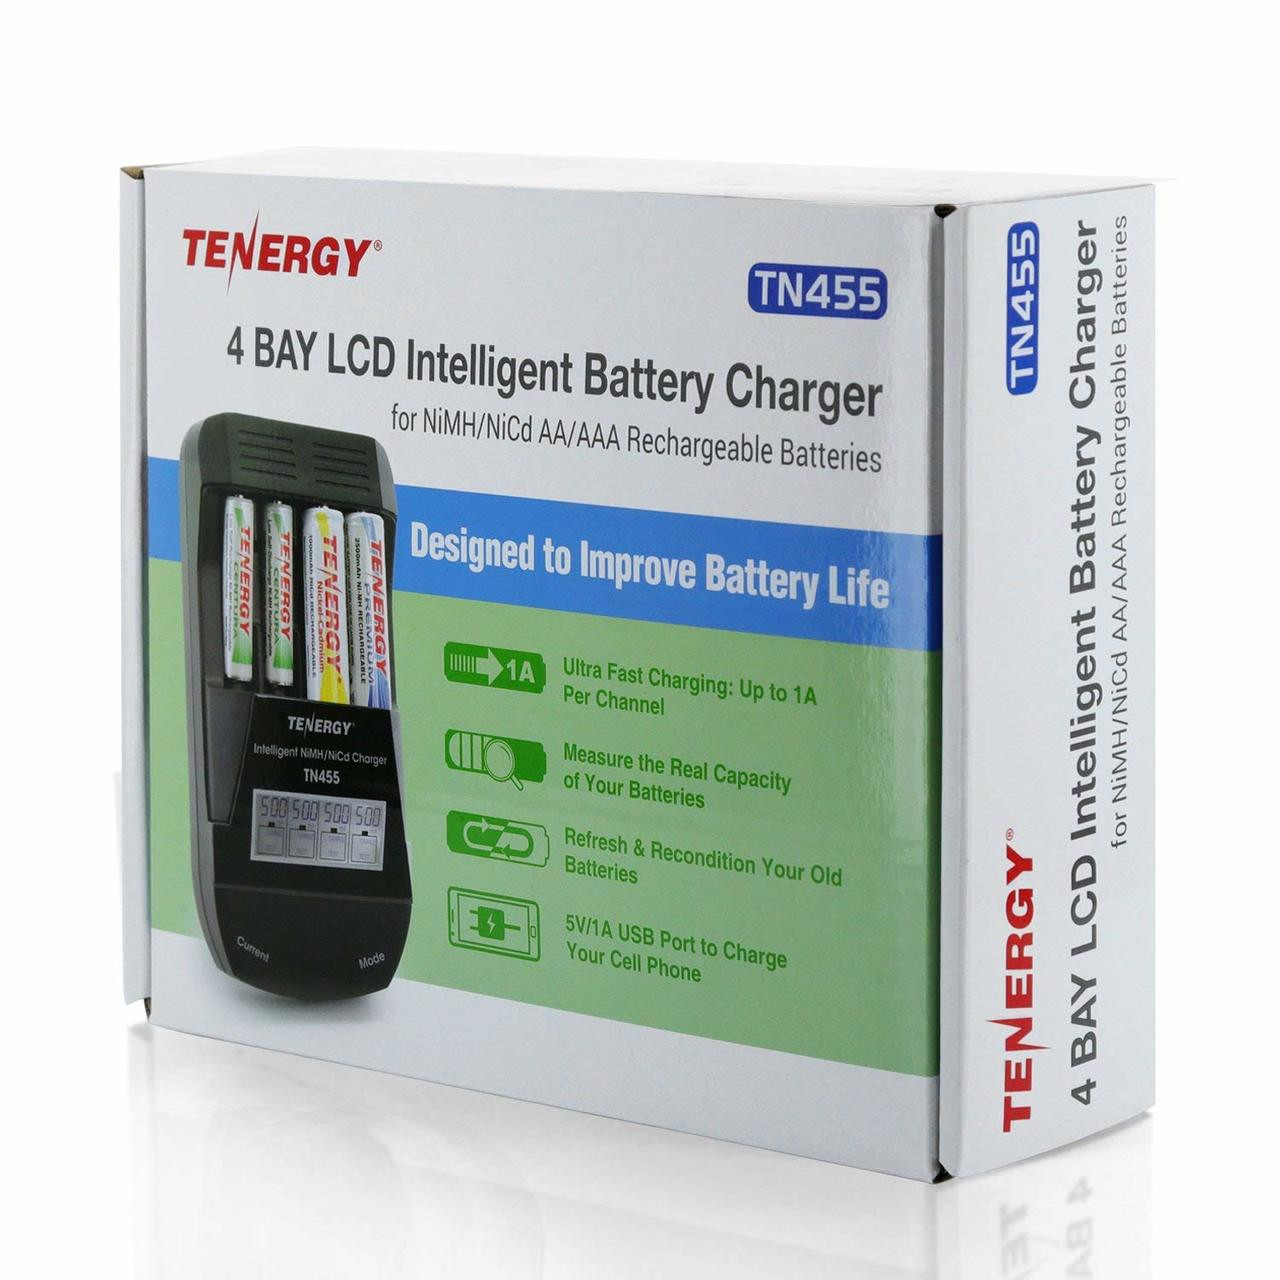 Tenergy TN455 Intelligent Battery Charger for NiMH/NiCd AA/AAA Rechargeable Batteries, 4-Bay, LCD Screen, USB output